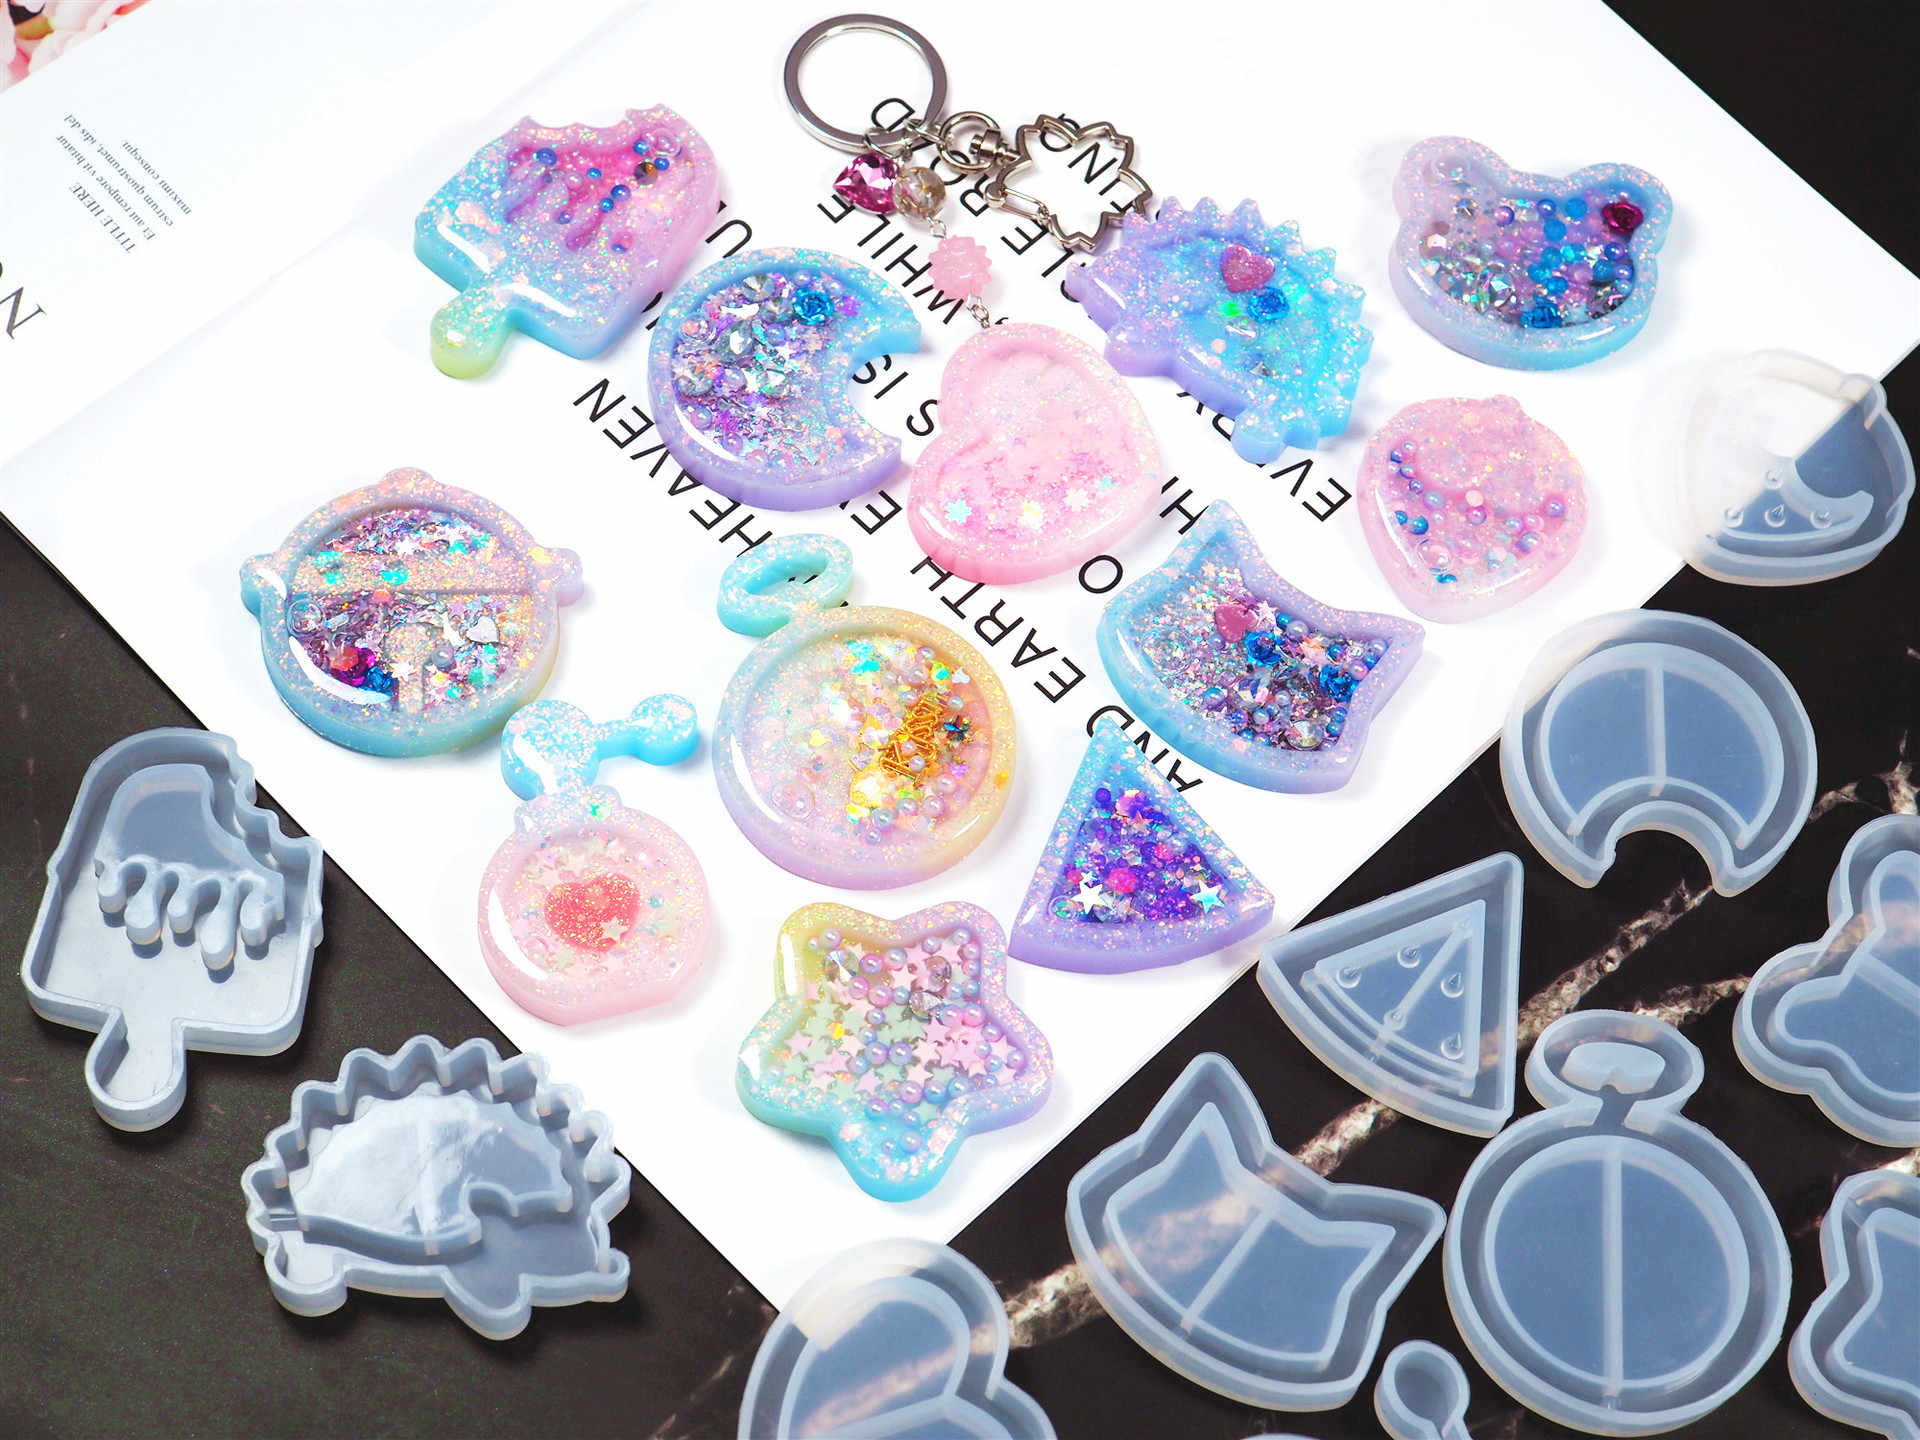 1PC Shaker Mold Jewelry Mold Key Chain Pendant Resin Epoxy AB Resin Shaker Charm For DIY Jewelry Making